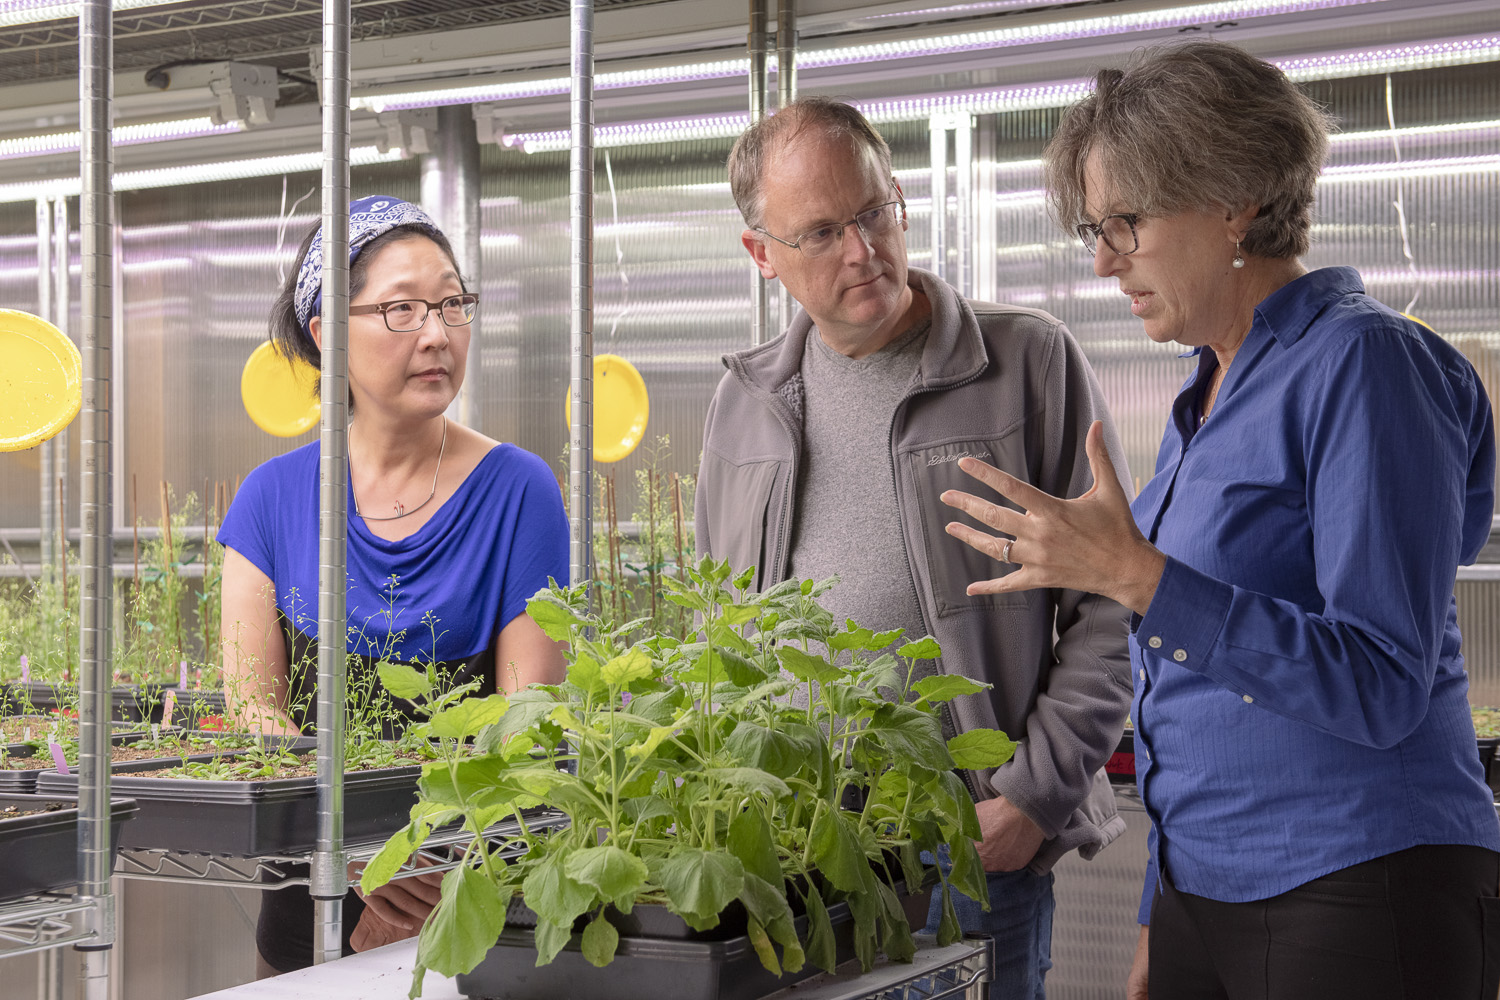 Sue Rhee, Thomas Clandinin and Miriam B. Goodman discuss the NeuroPlant project over a tobacco plant in the greenhouse. (Image credit: L.A. Cicero)